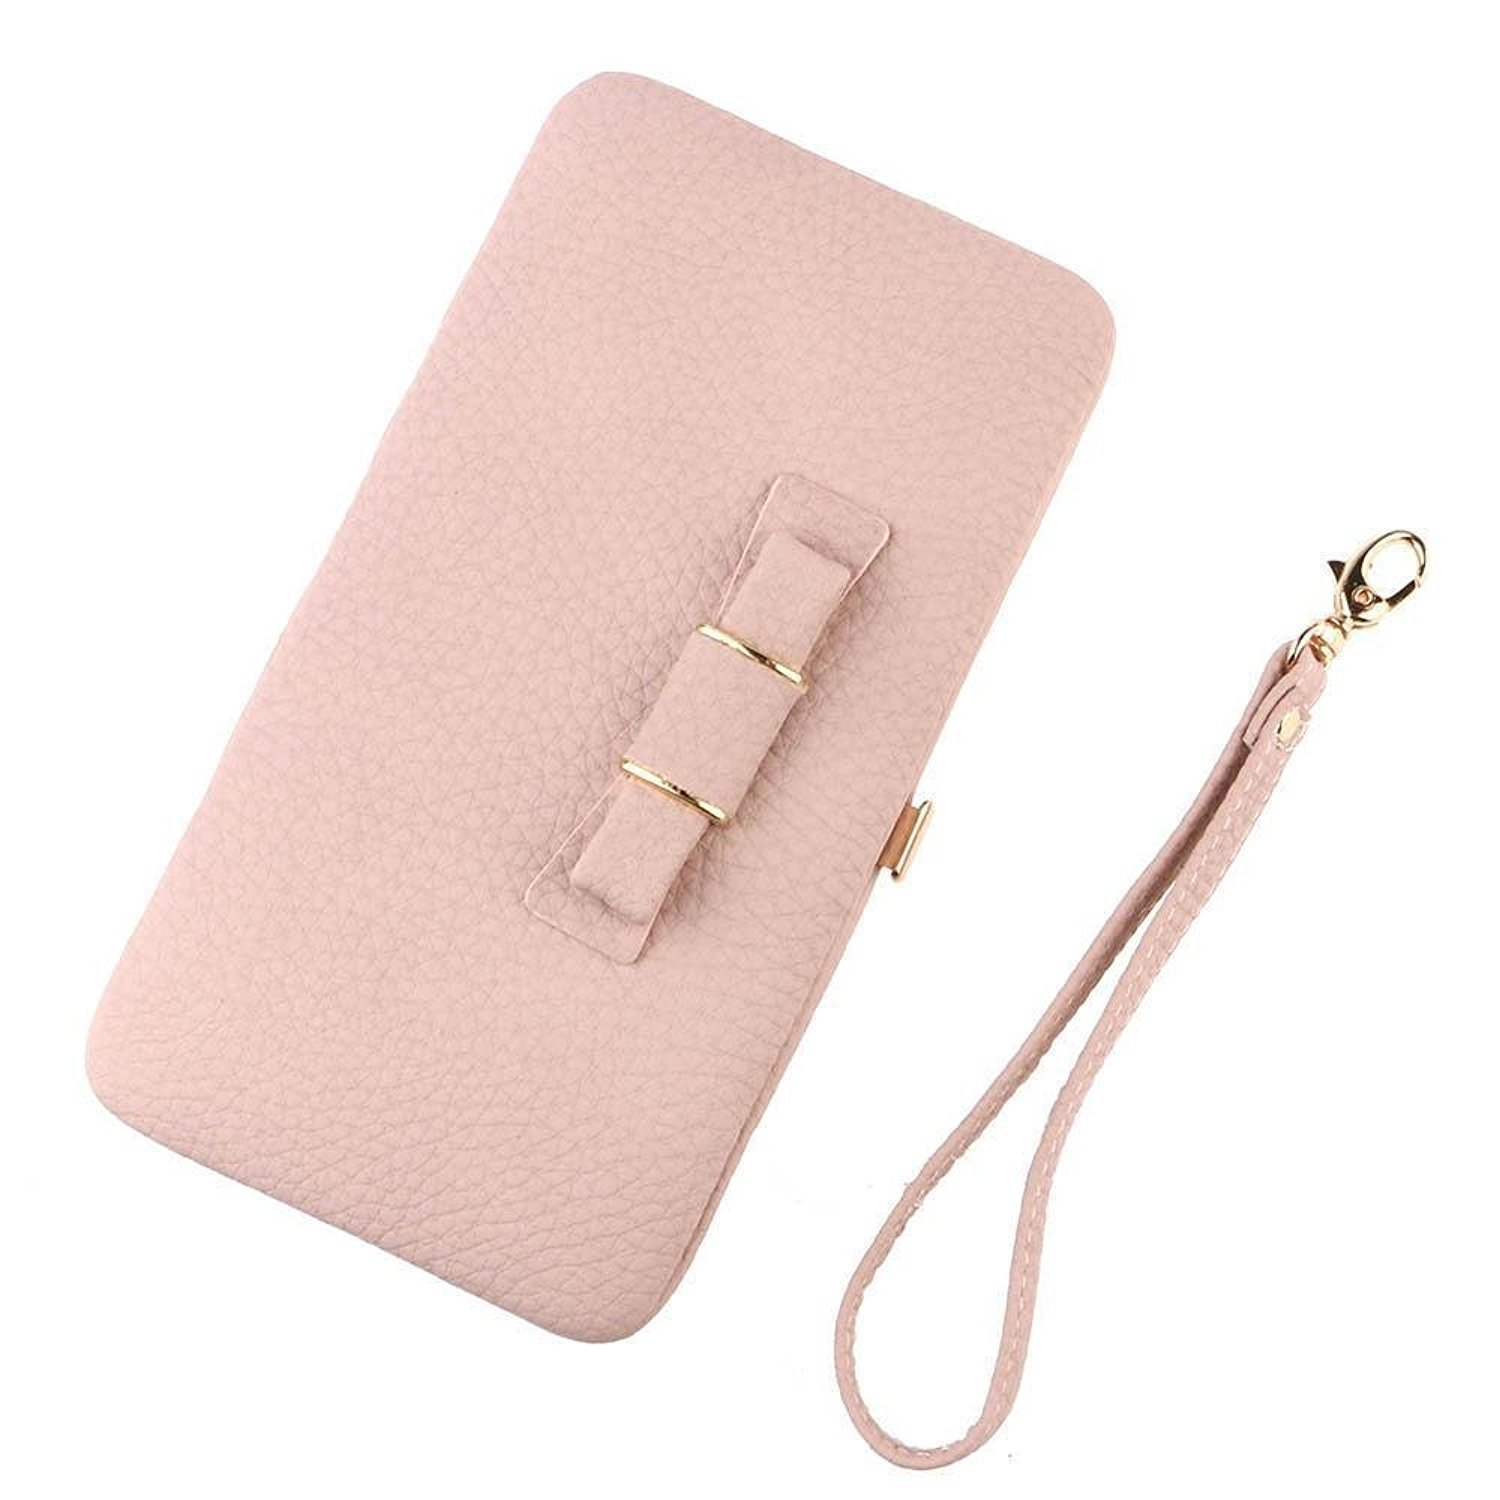 TraderPlus Womens Leather Phone Clutch Wallet Credit Card Purse Bow-Knot Handbag